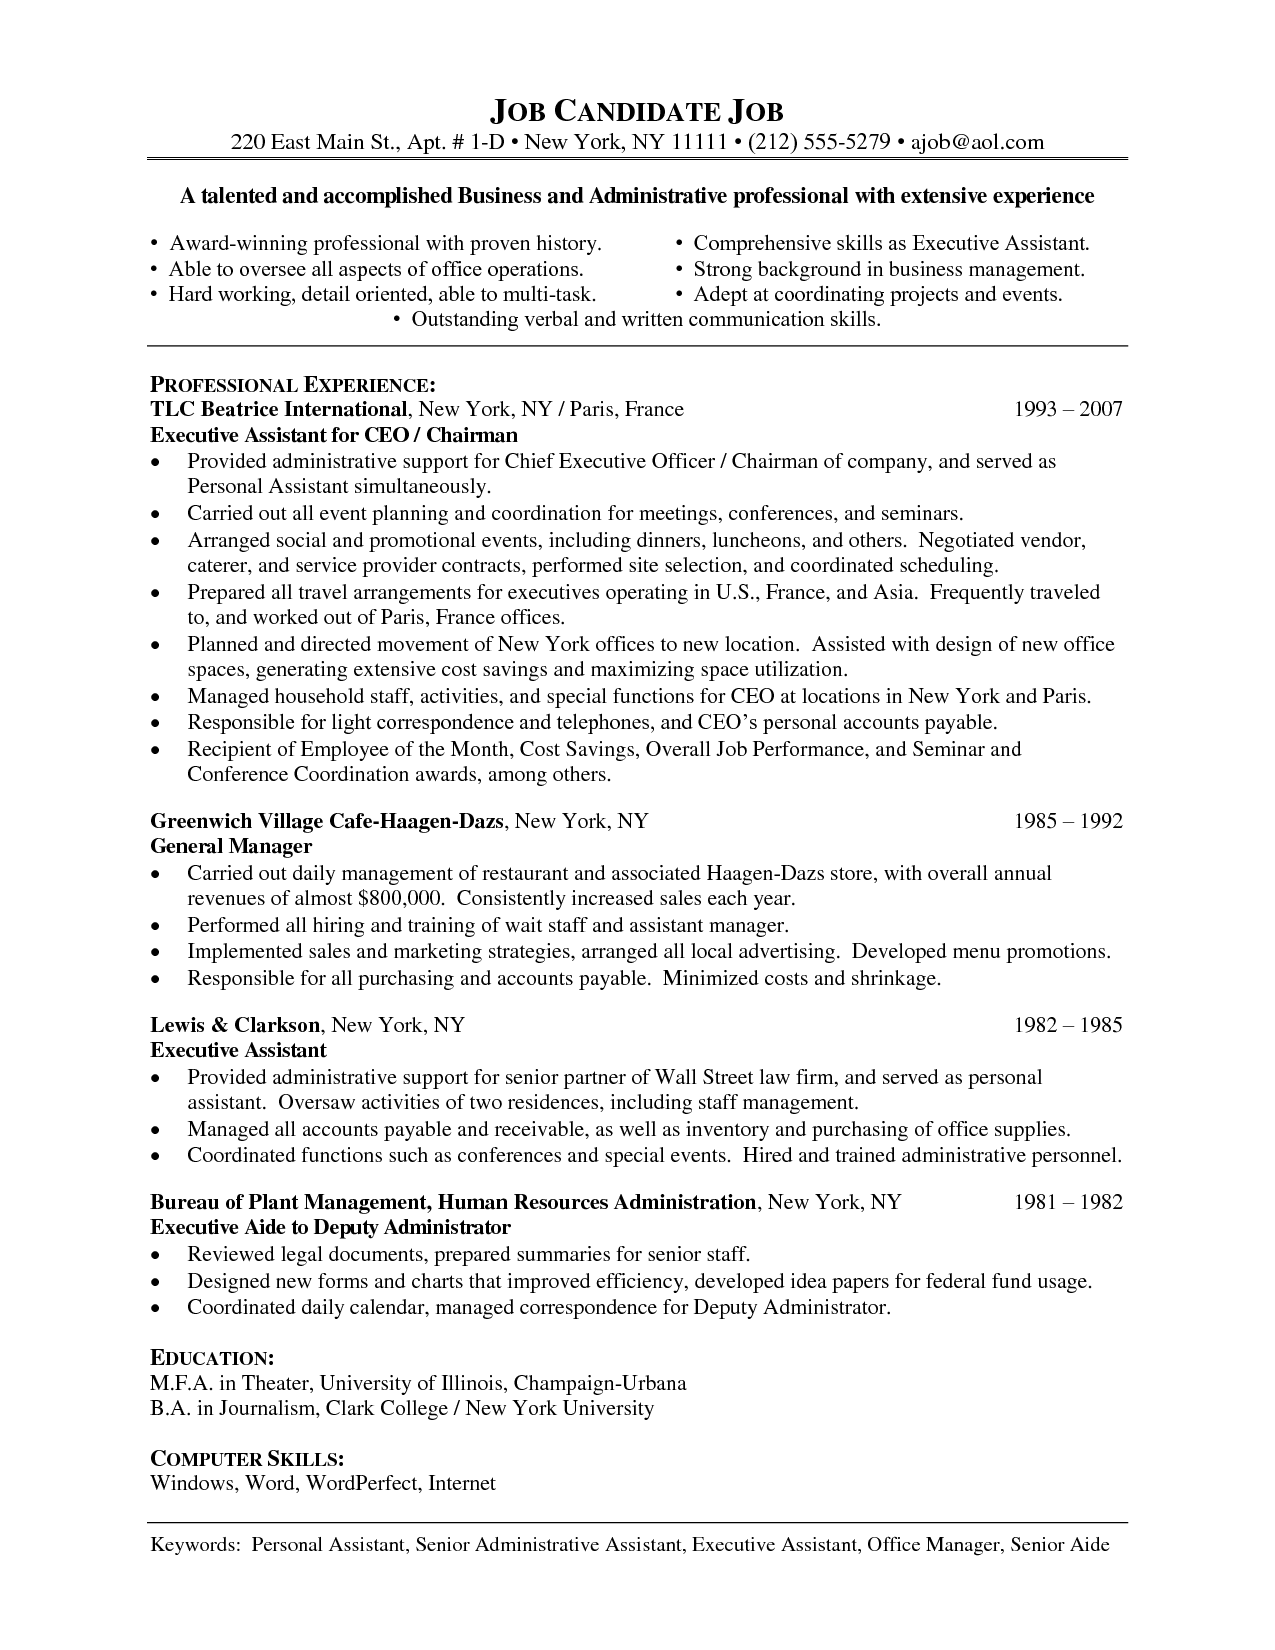 Purchasing Assistant Resume Functional Resume Template For Administrative  Assistant Word S .  Sample Functional Resume For Administrative Assistant